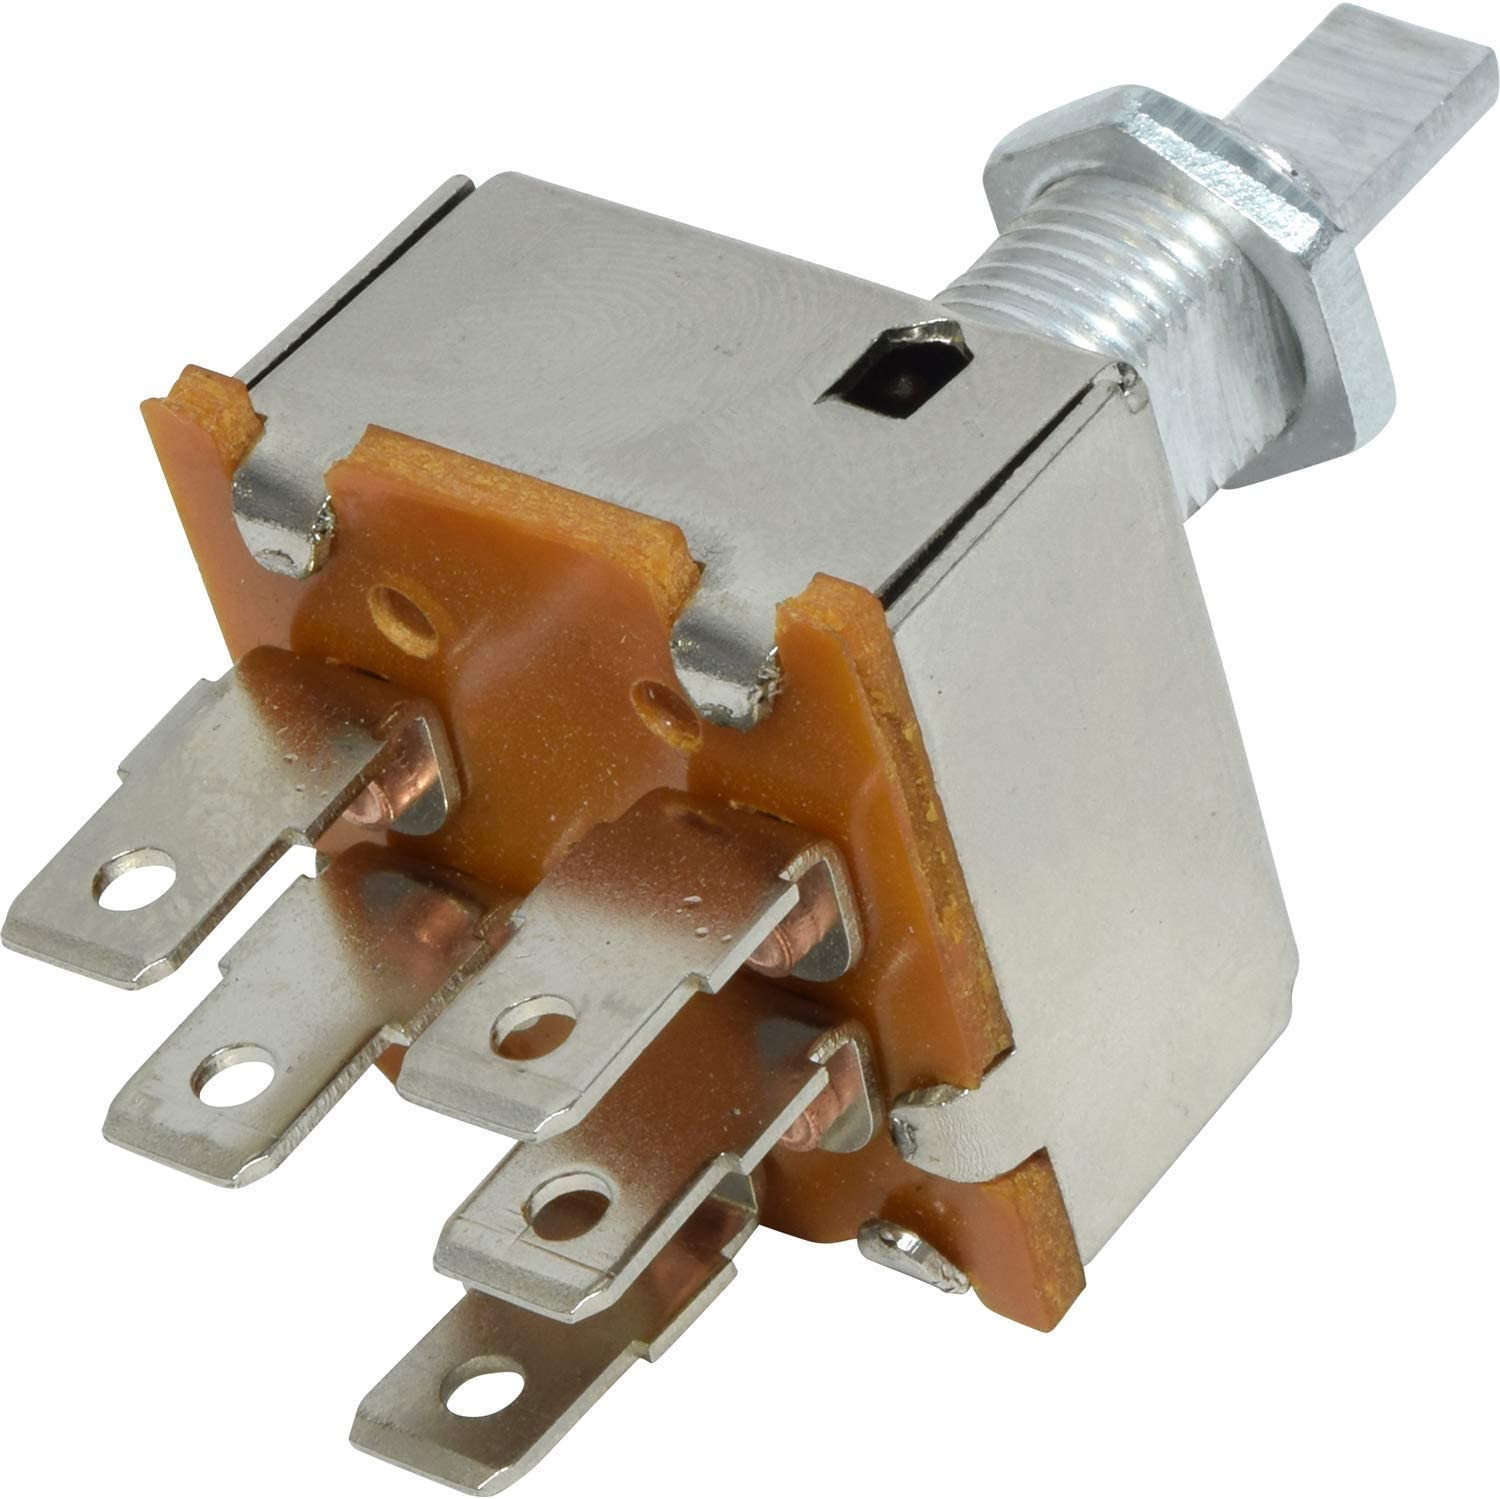 New 4 years warranty HVAC Blower Switch Control Animer and price revision 1740005